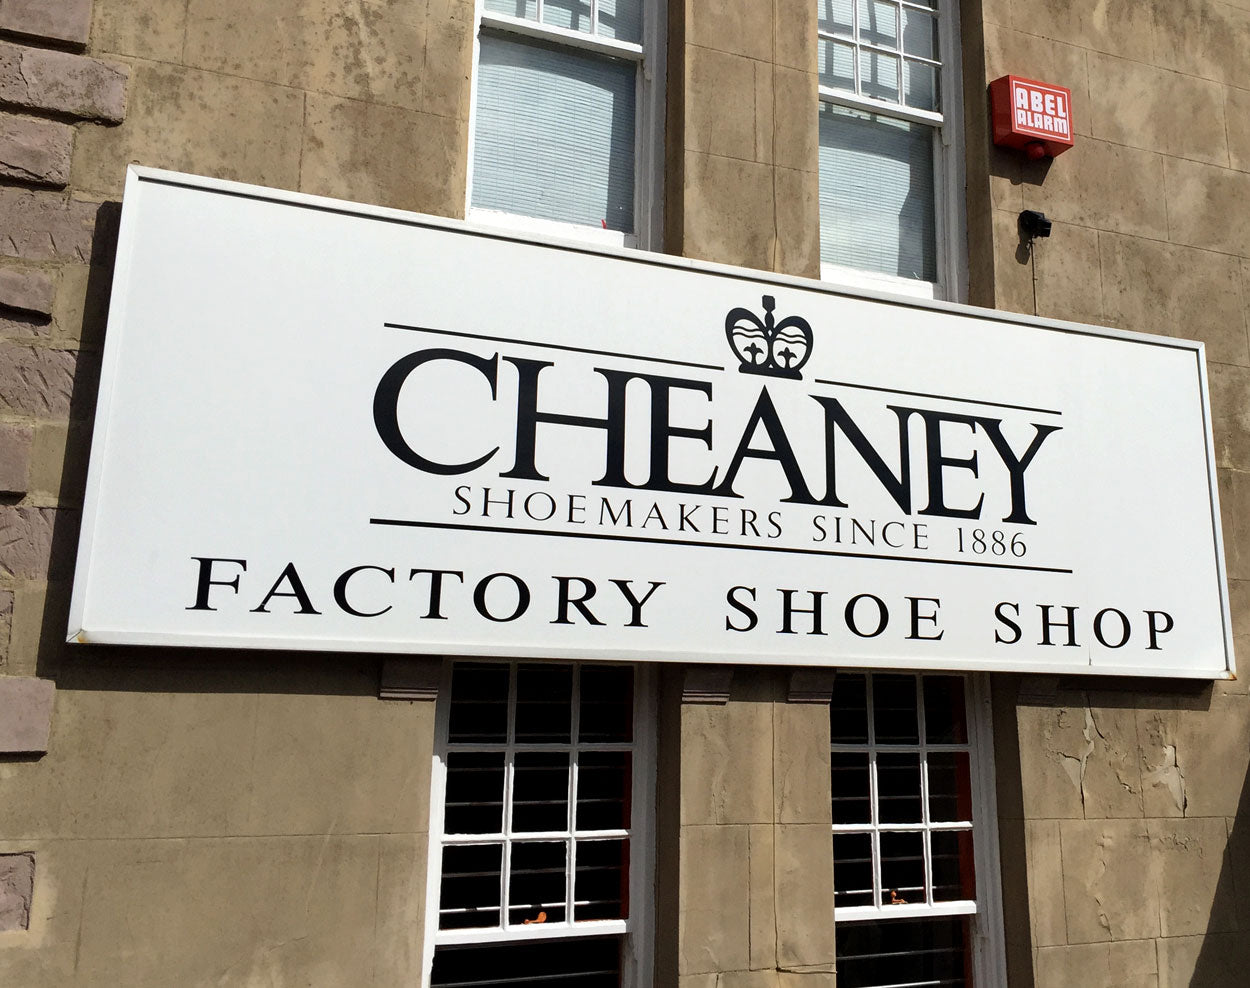 A visit to the Joseph Cheaney factory shop